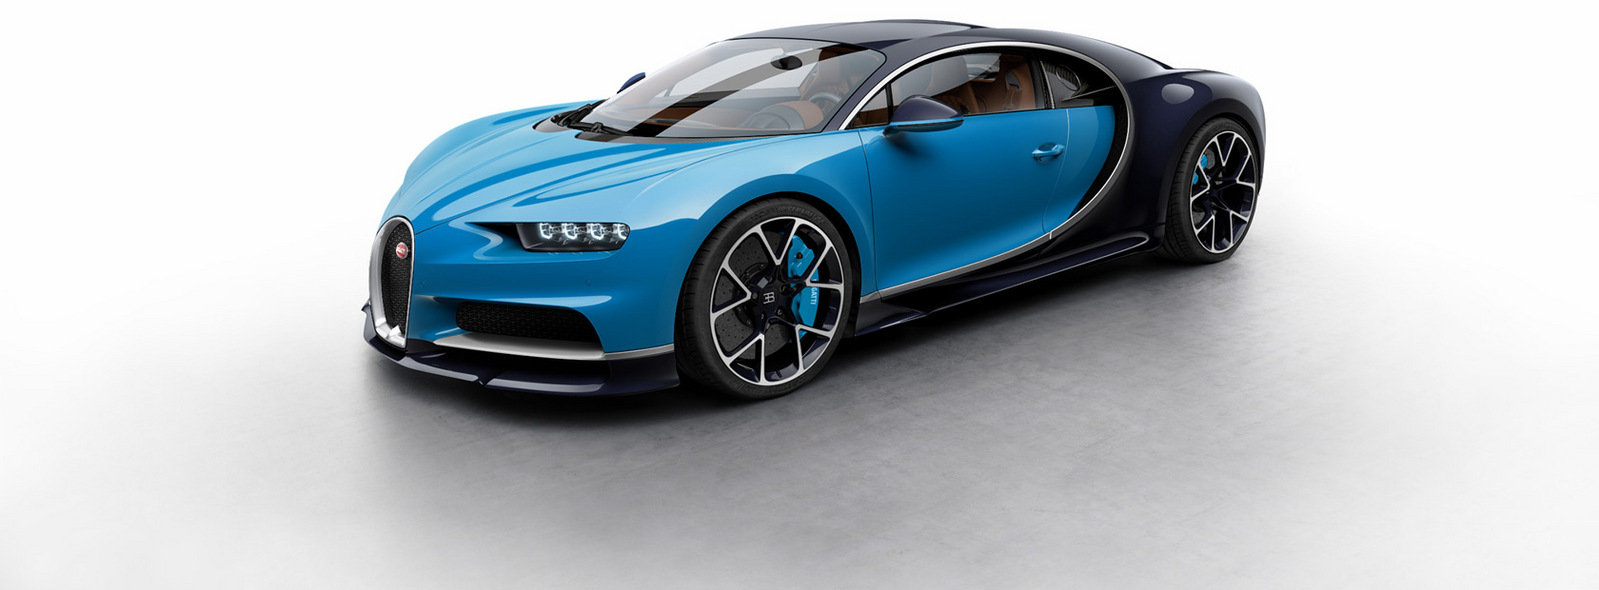 2018 bugatti chiron picture 668885 car review top speed. Black Bedroom Furniture Sets. Home Design Ideas